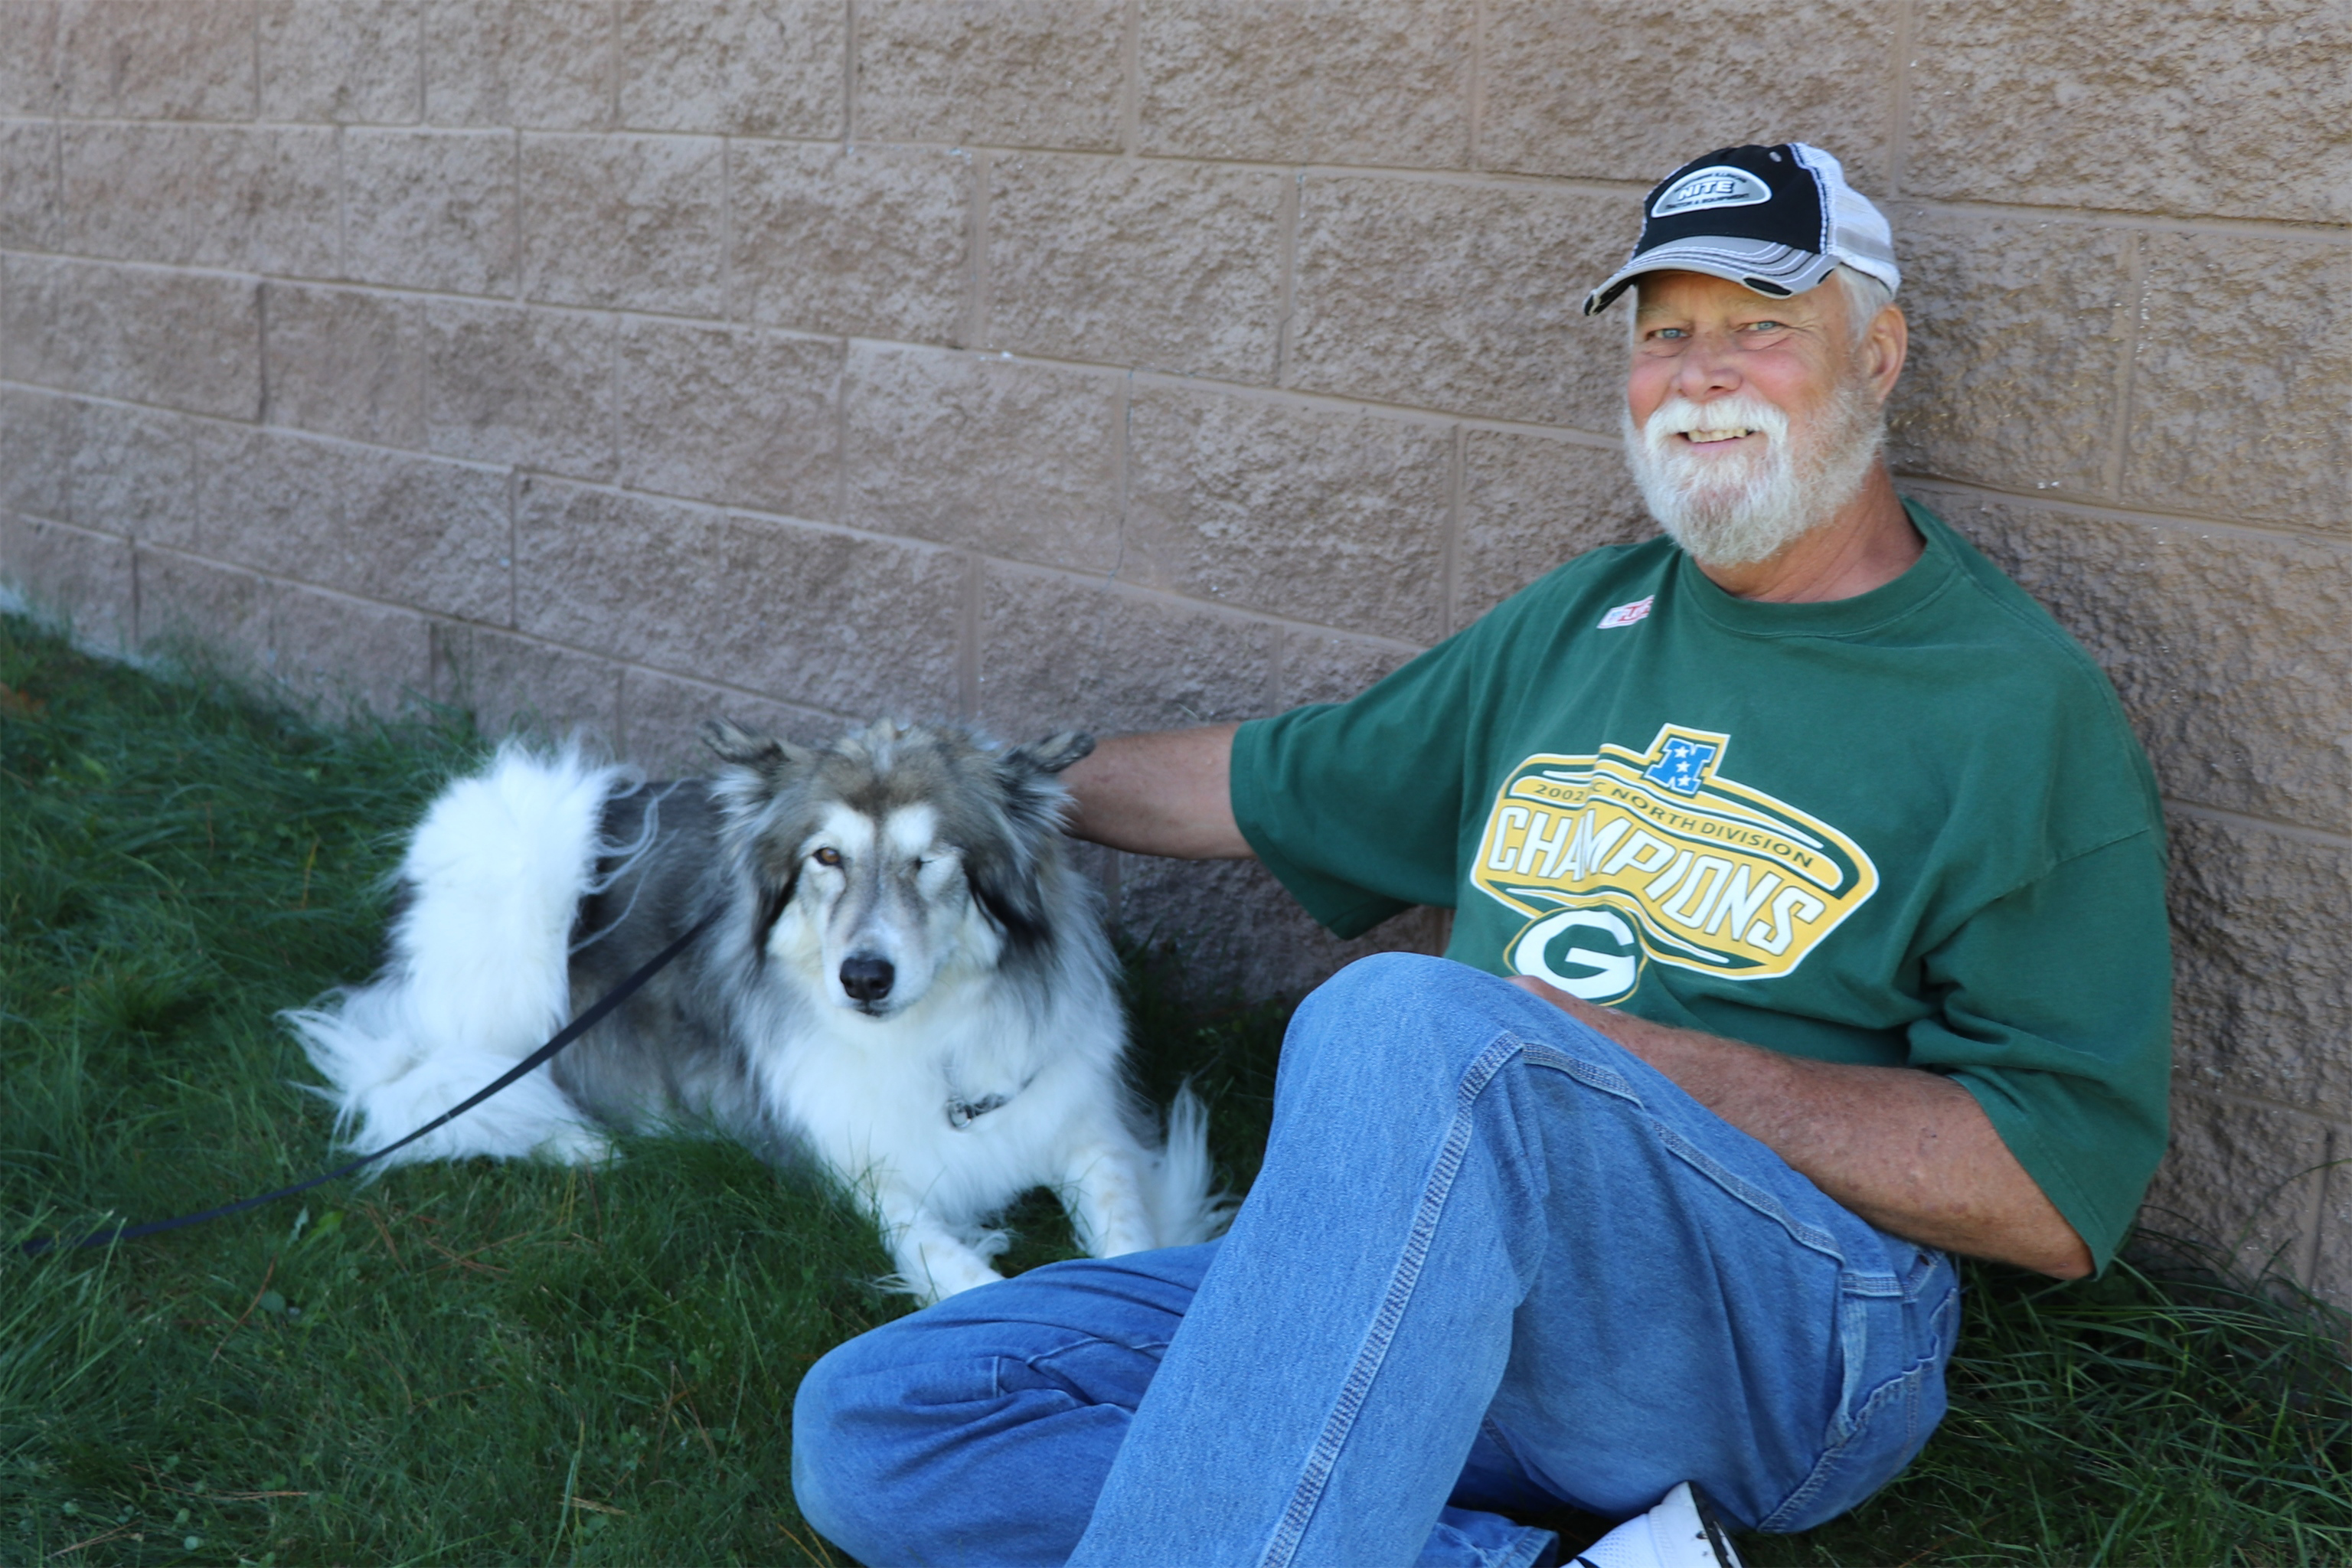 This gentleman and his dog relax in the shade at the park in St. Germain. Kim Johnson photo